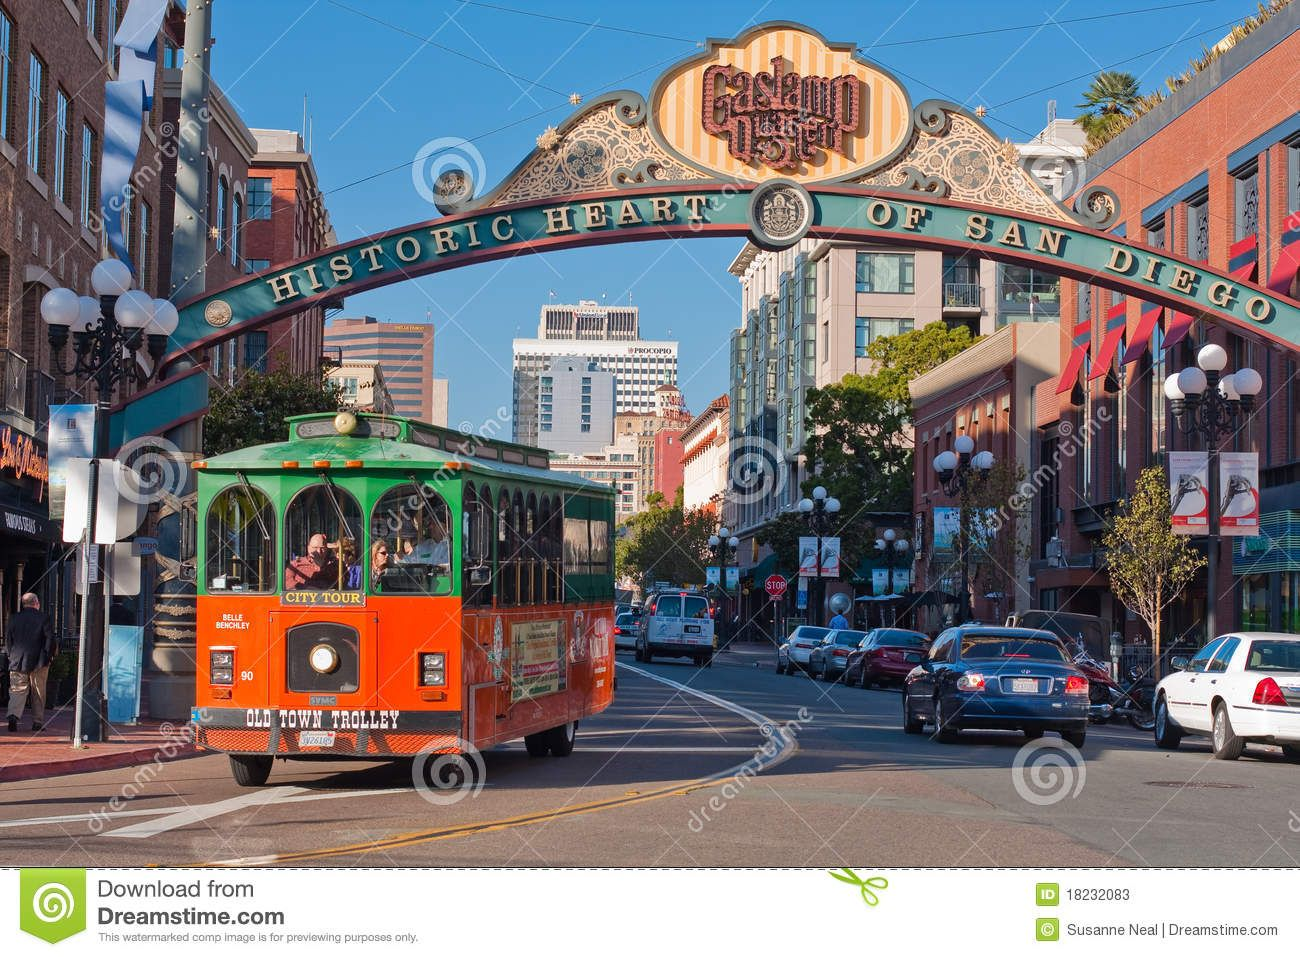 old town san diego - Google Search